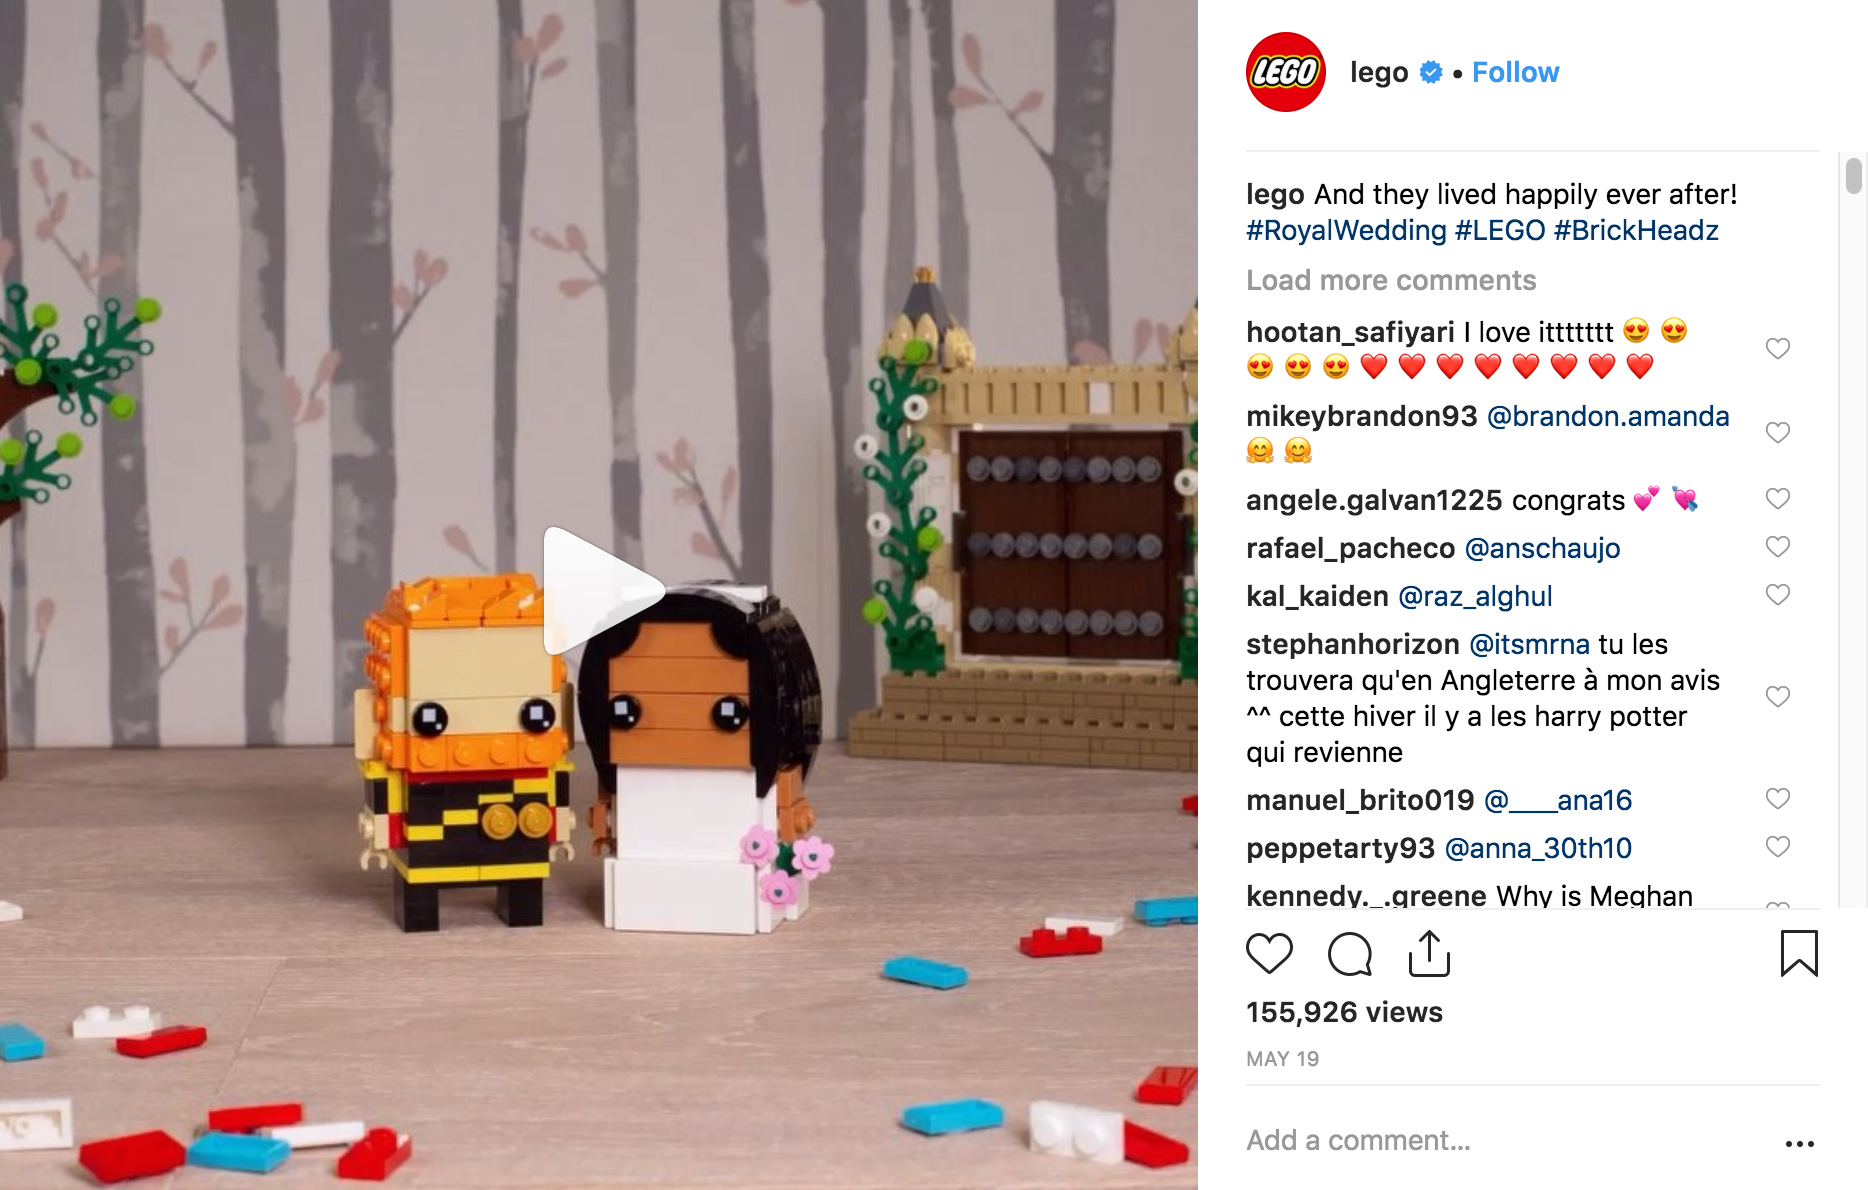 Best Instagram Campaigns 2018 - Lego - Sked Social